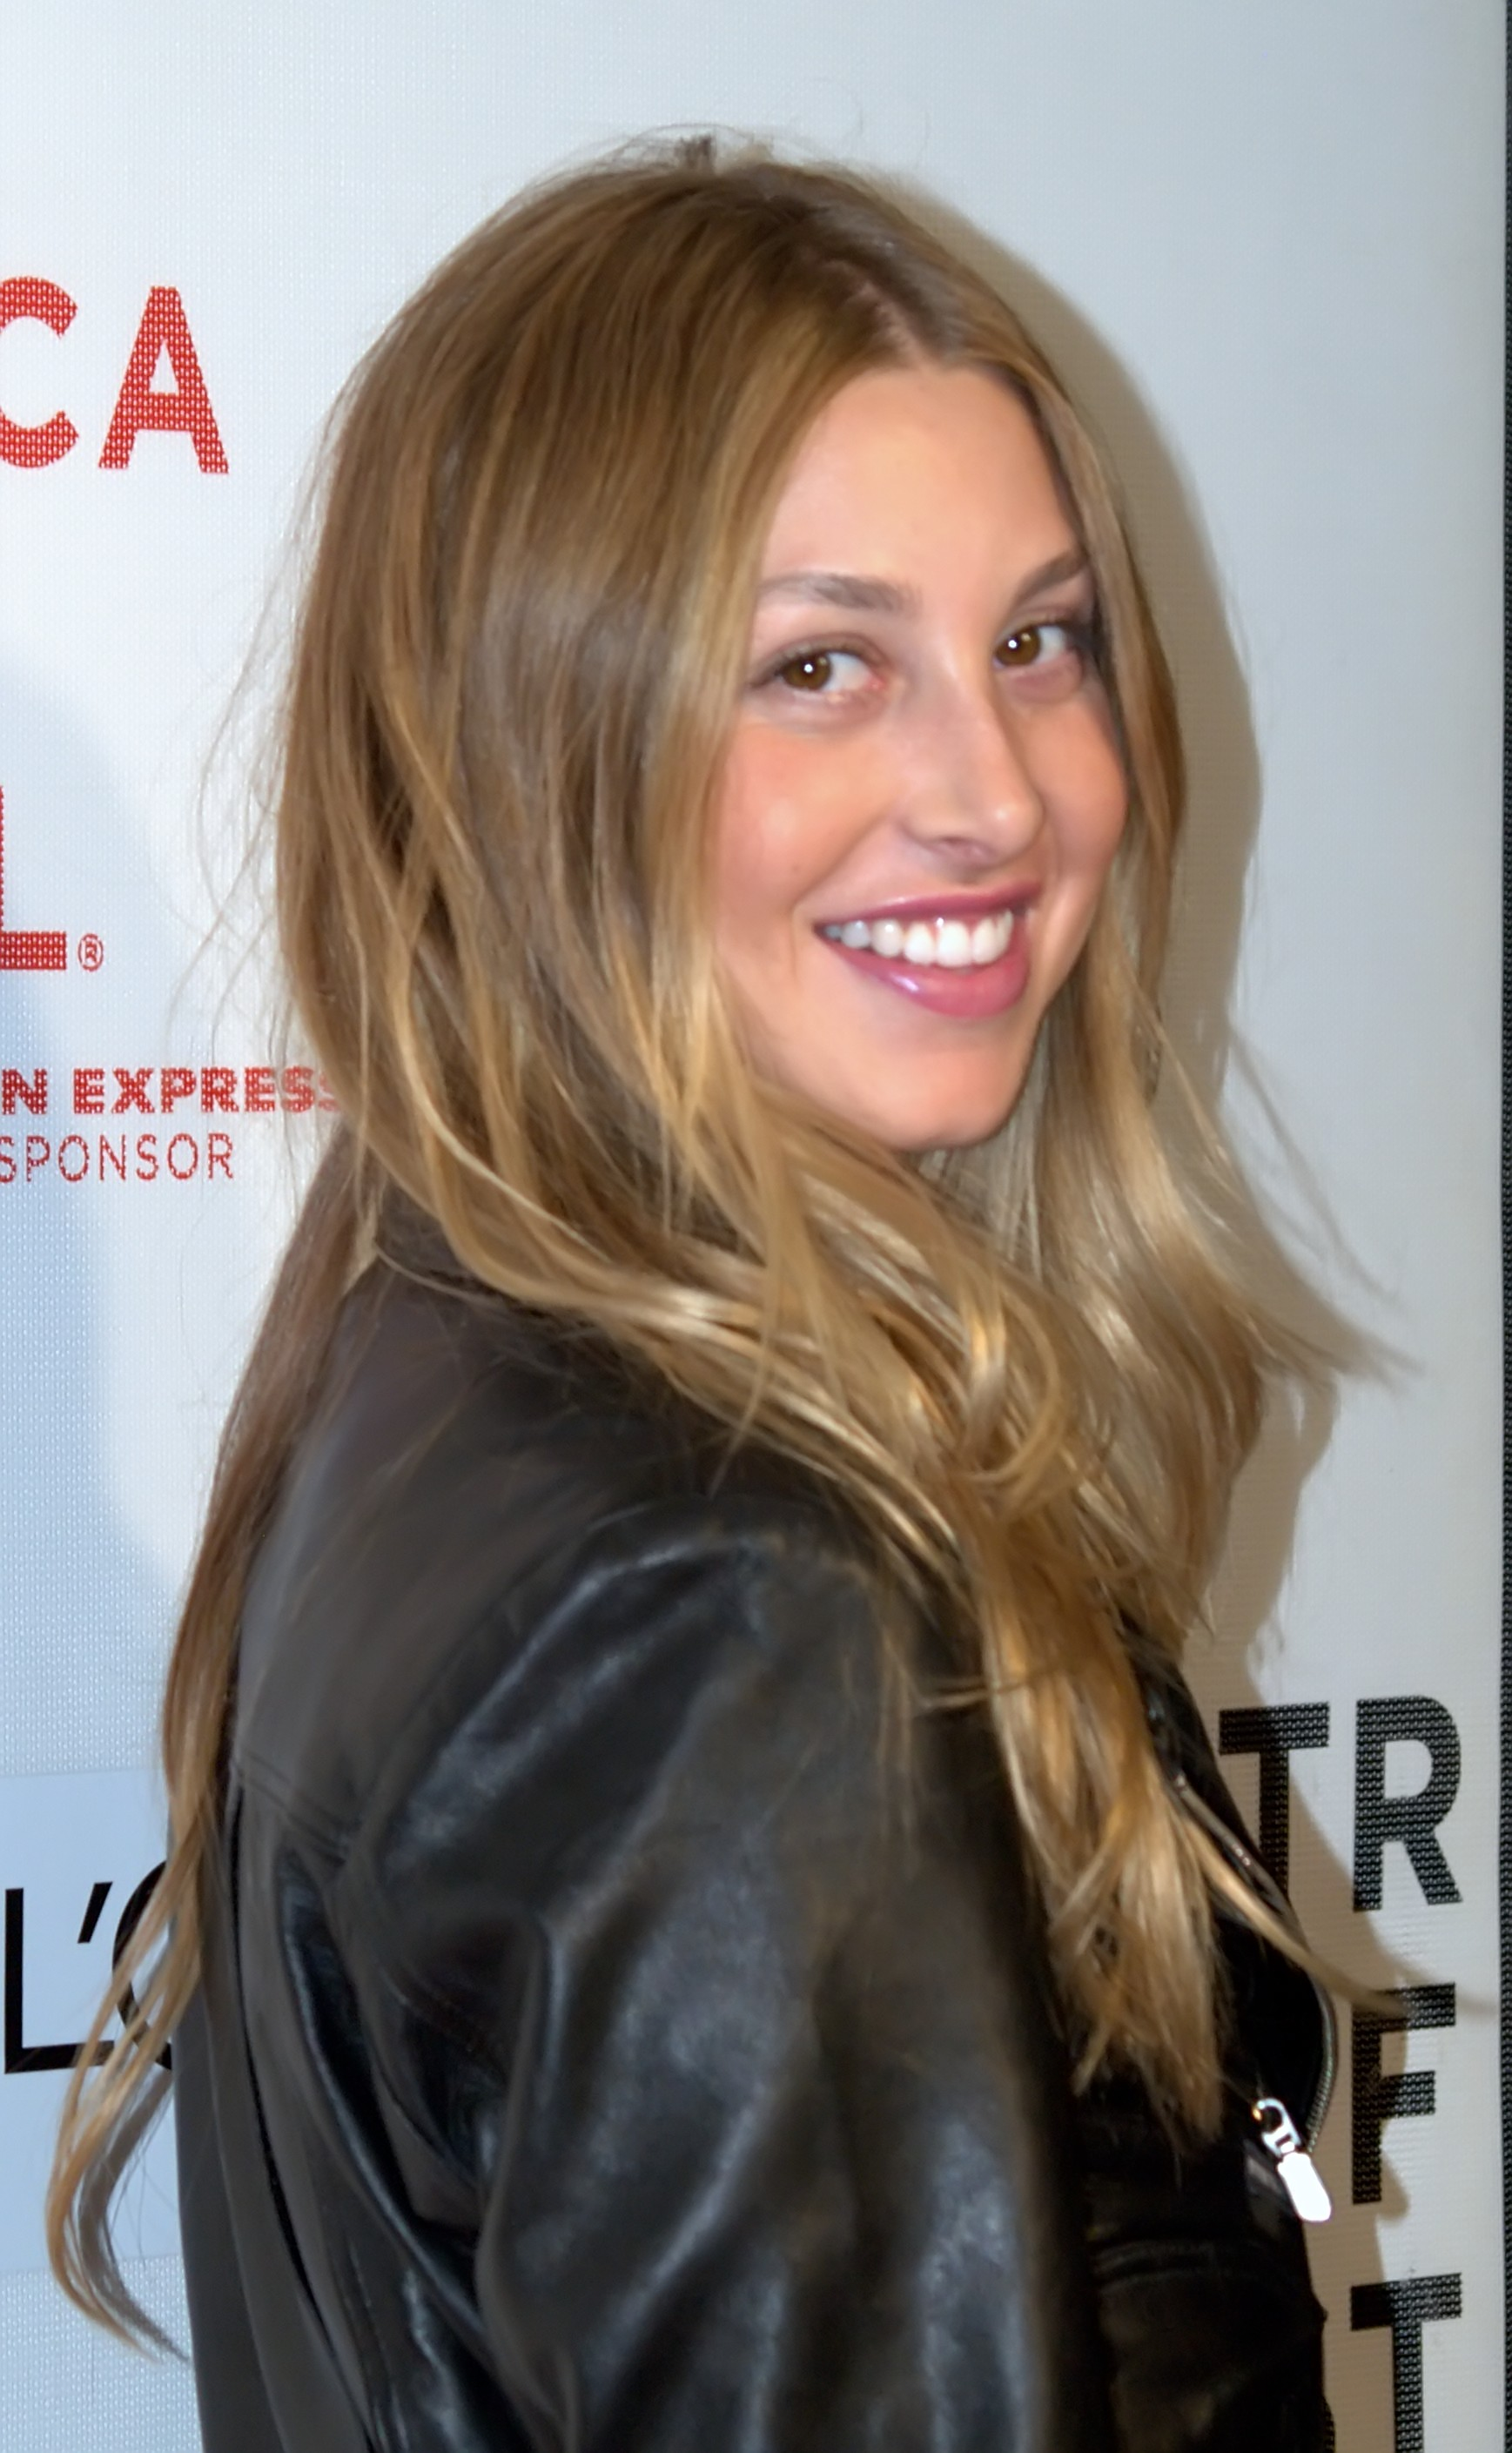 http://upload.wikimedia.org/wikipedia/commons/4/47/Whitney_Port_Shankbone_2009_Tribeca.jpg